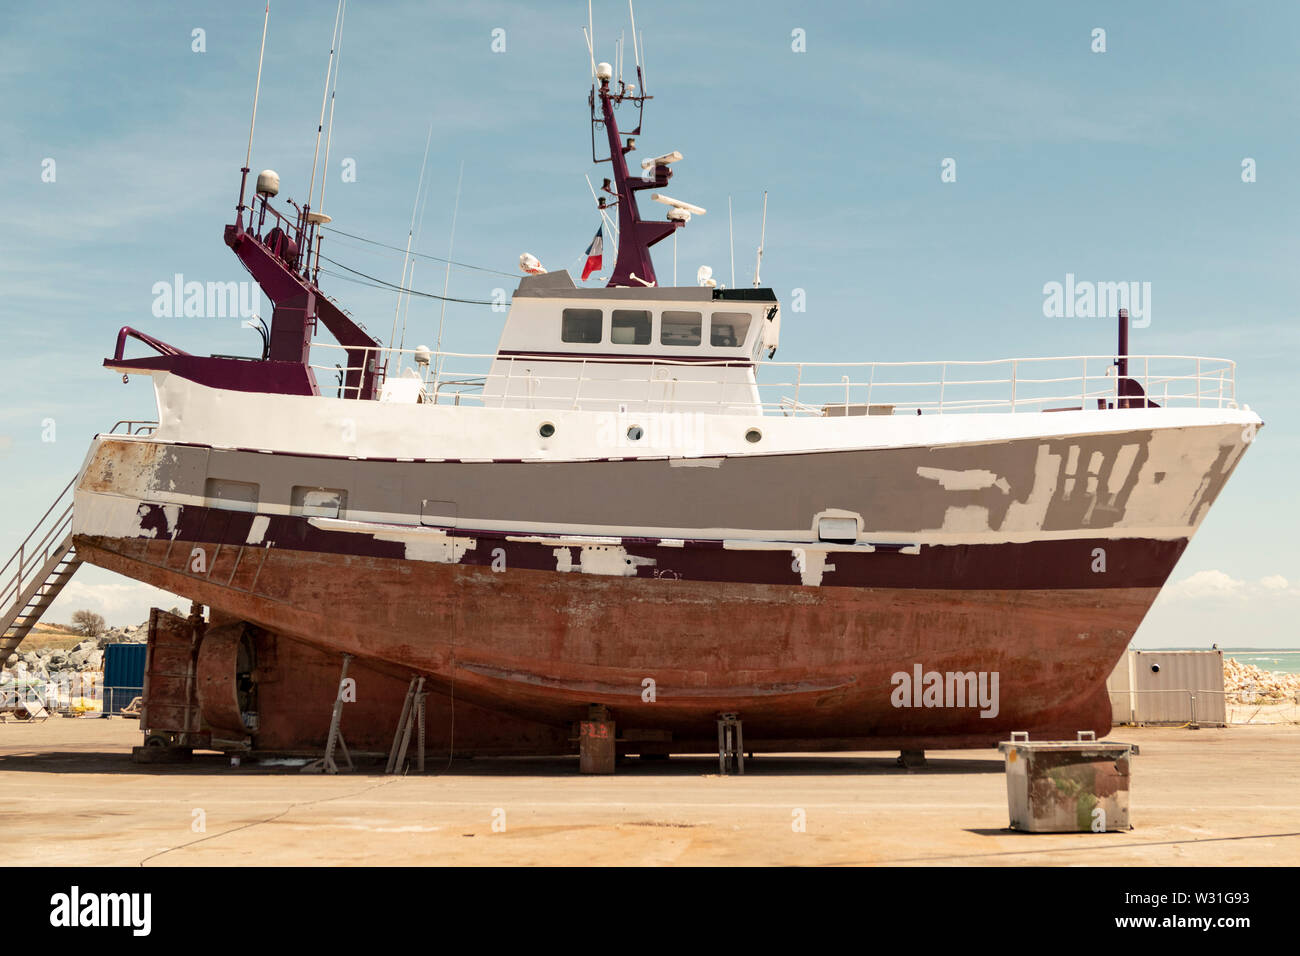 Vessel for fishing on dry dock - Stock Image